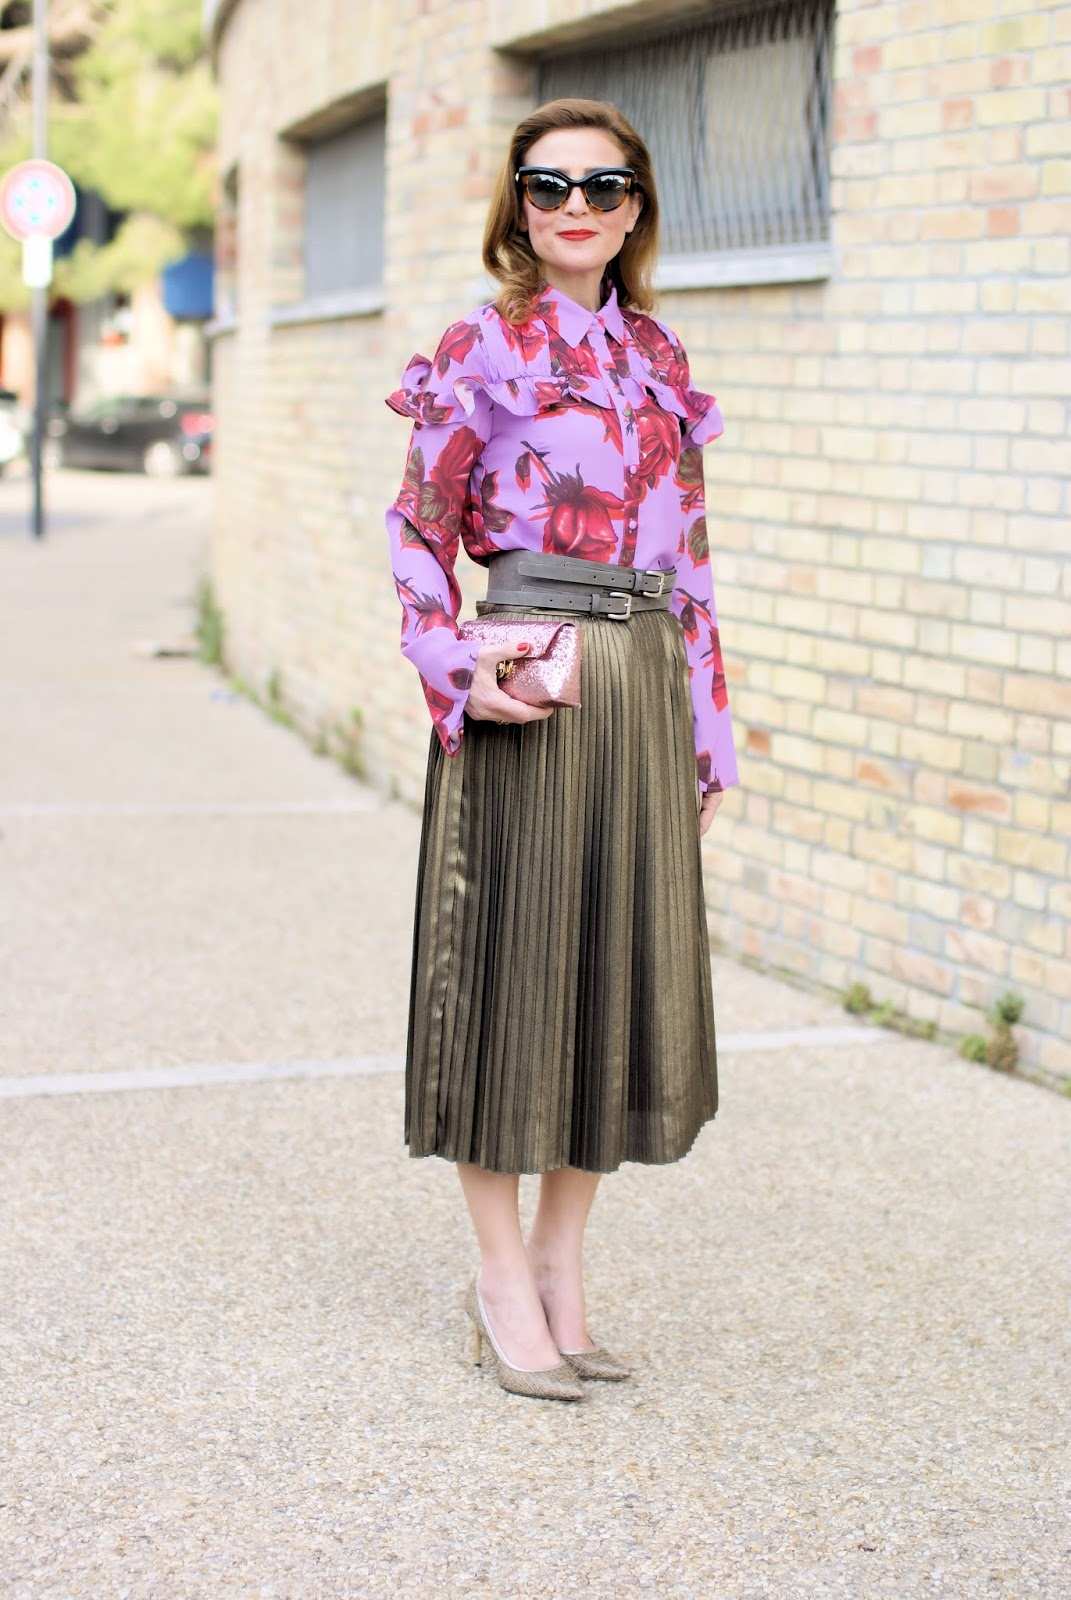 Golden pleated skirt: Spring daytime outfit on Fashion and Cookies fashion blog, fashion blogger style